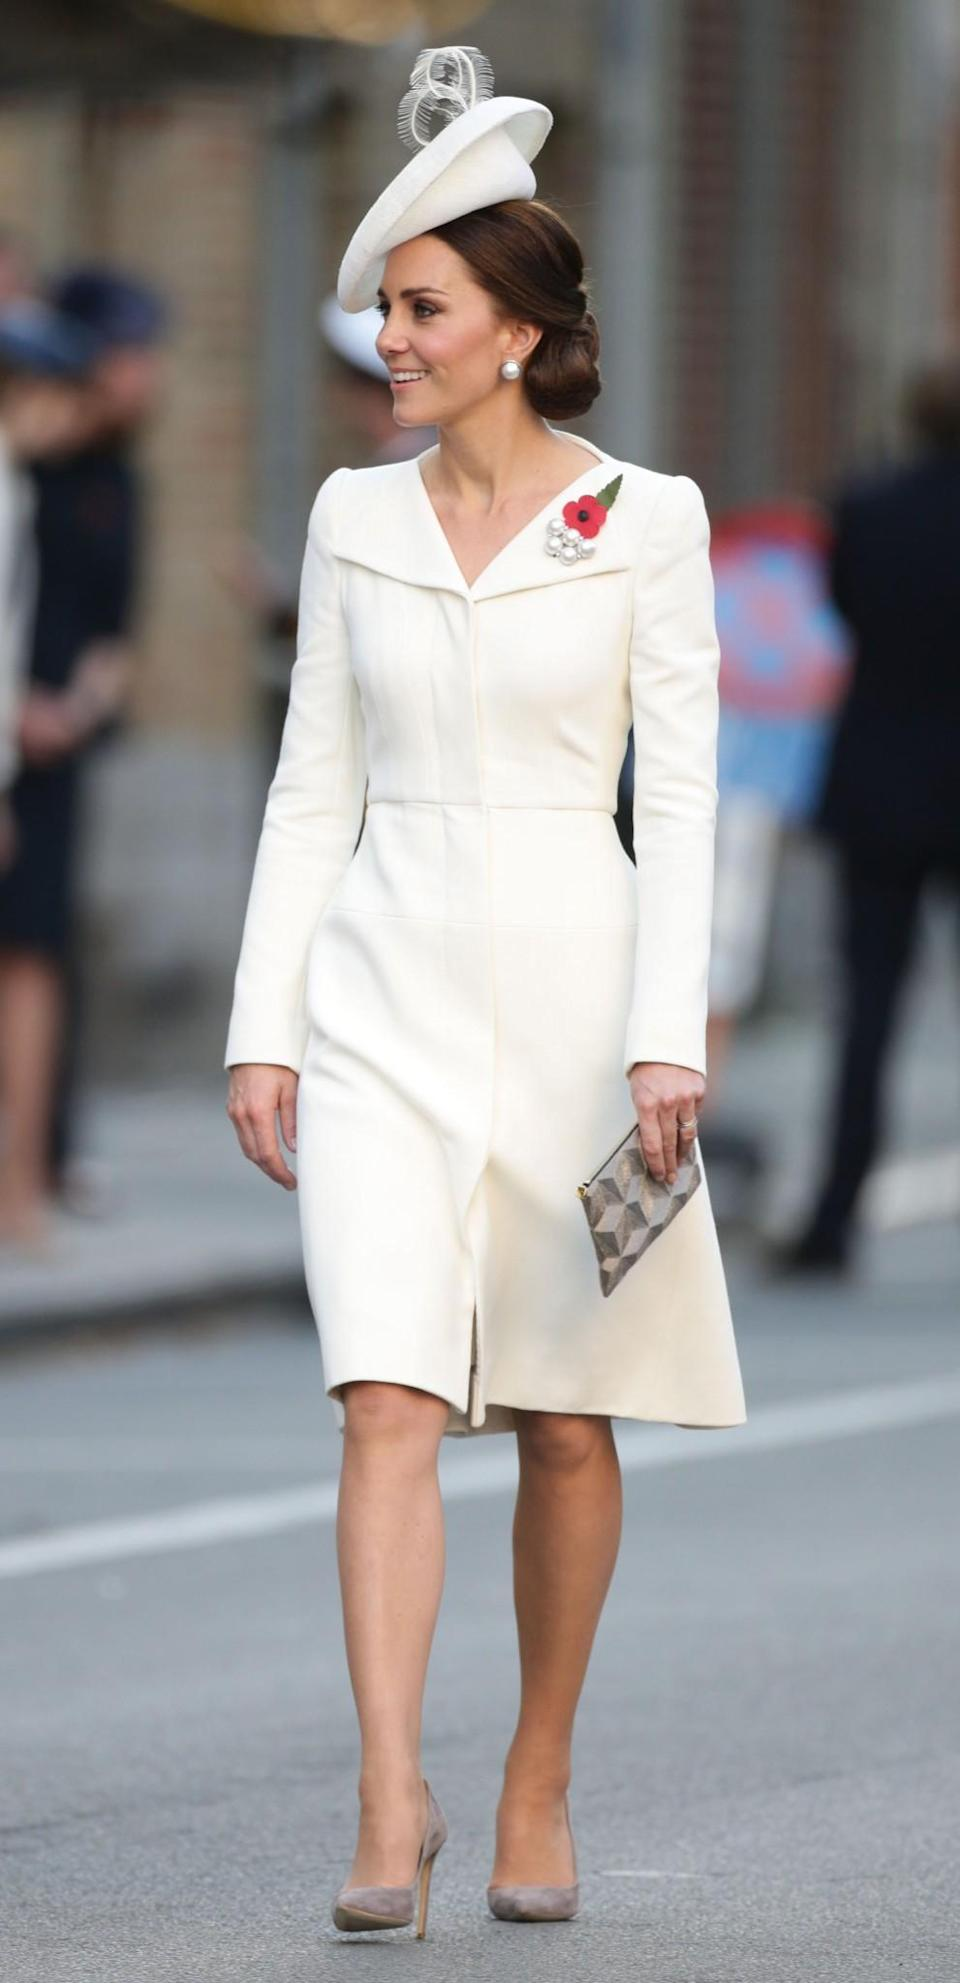 <p>The Duchess of Cambridge arrived at the ceremony commemorating 100 years since the Battle of Passchendaele in a white, Alexander McQueen ensemble: the same look she wore for Princess Charlotte's christening. <em>[Photo: PA]</em> </p>